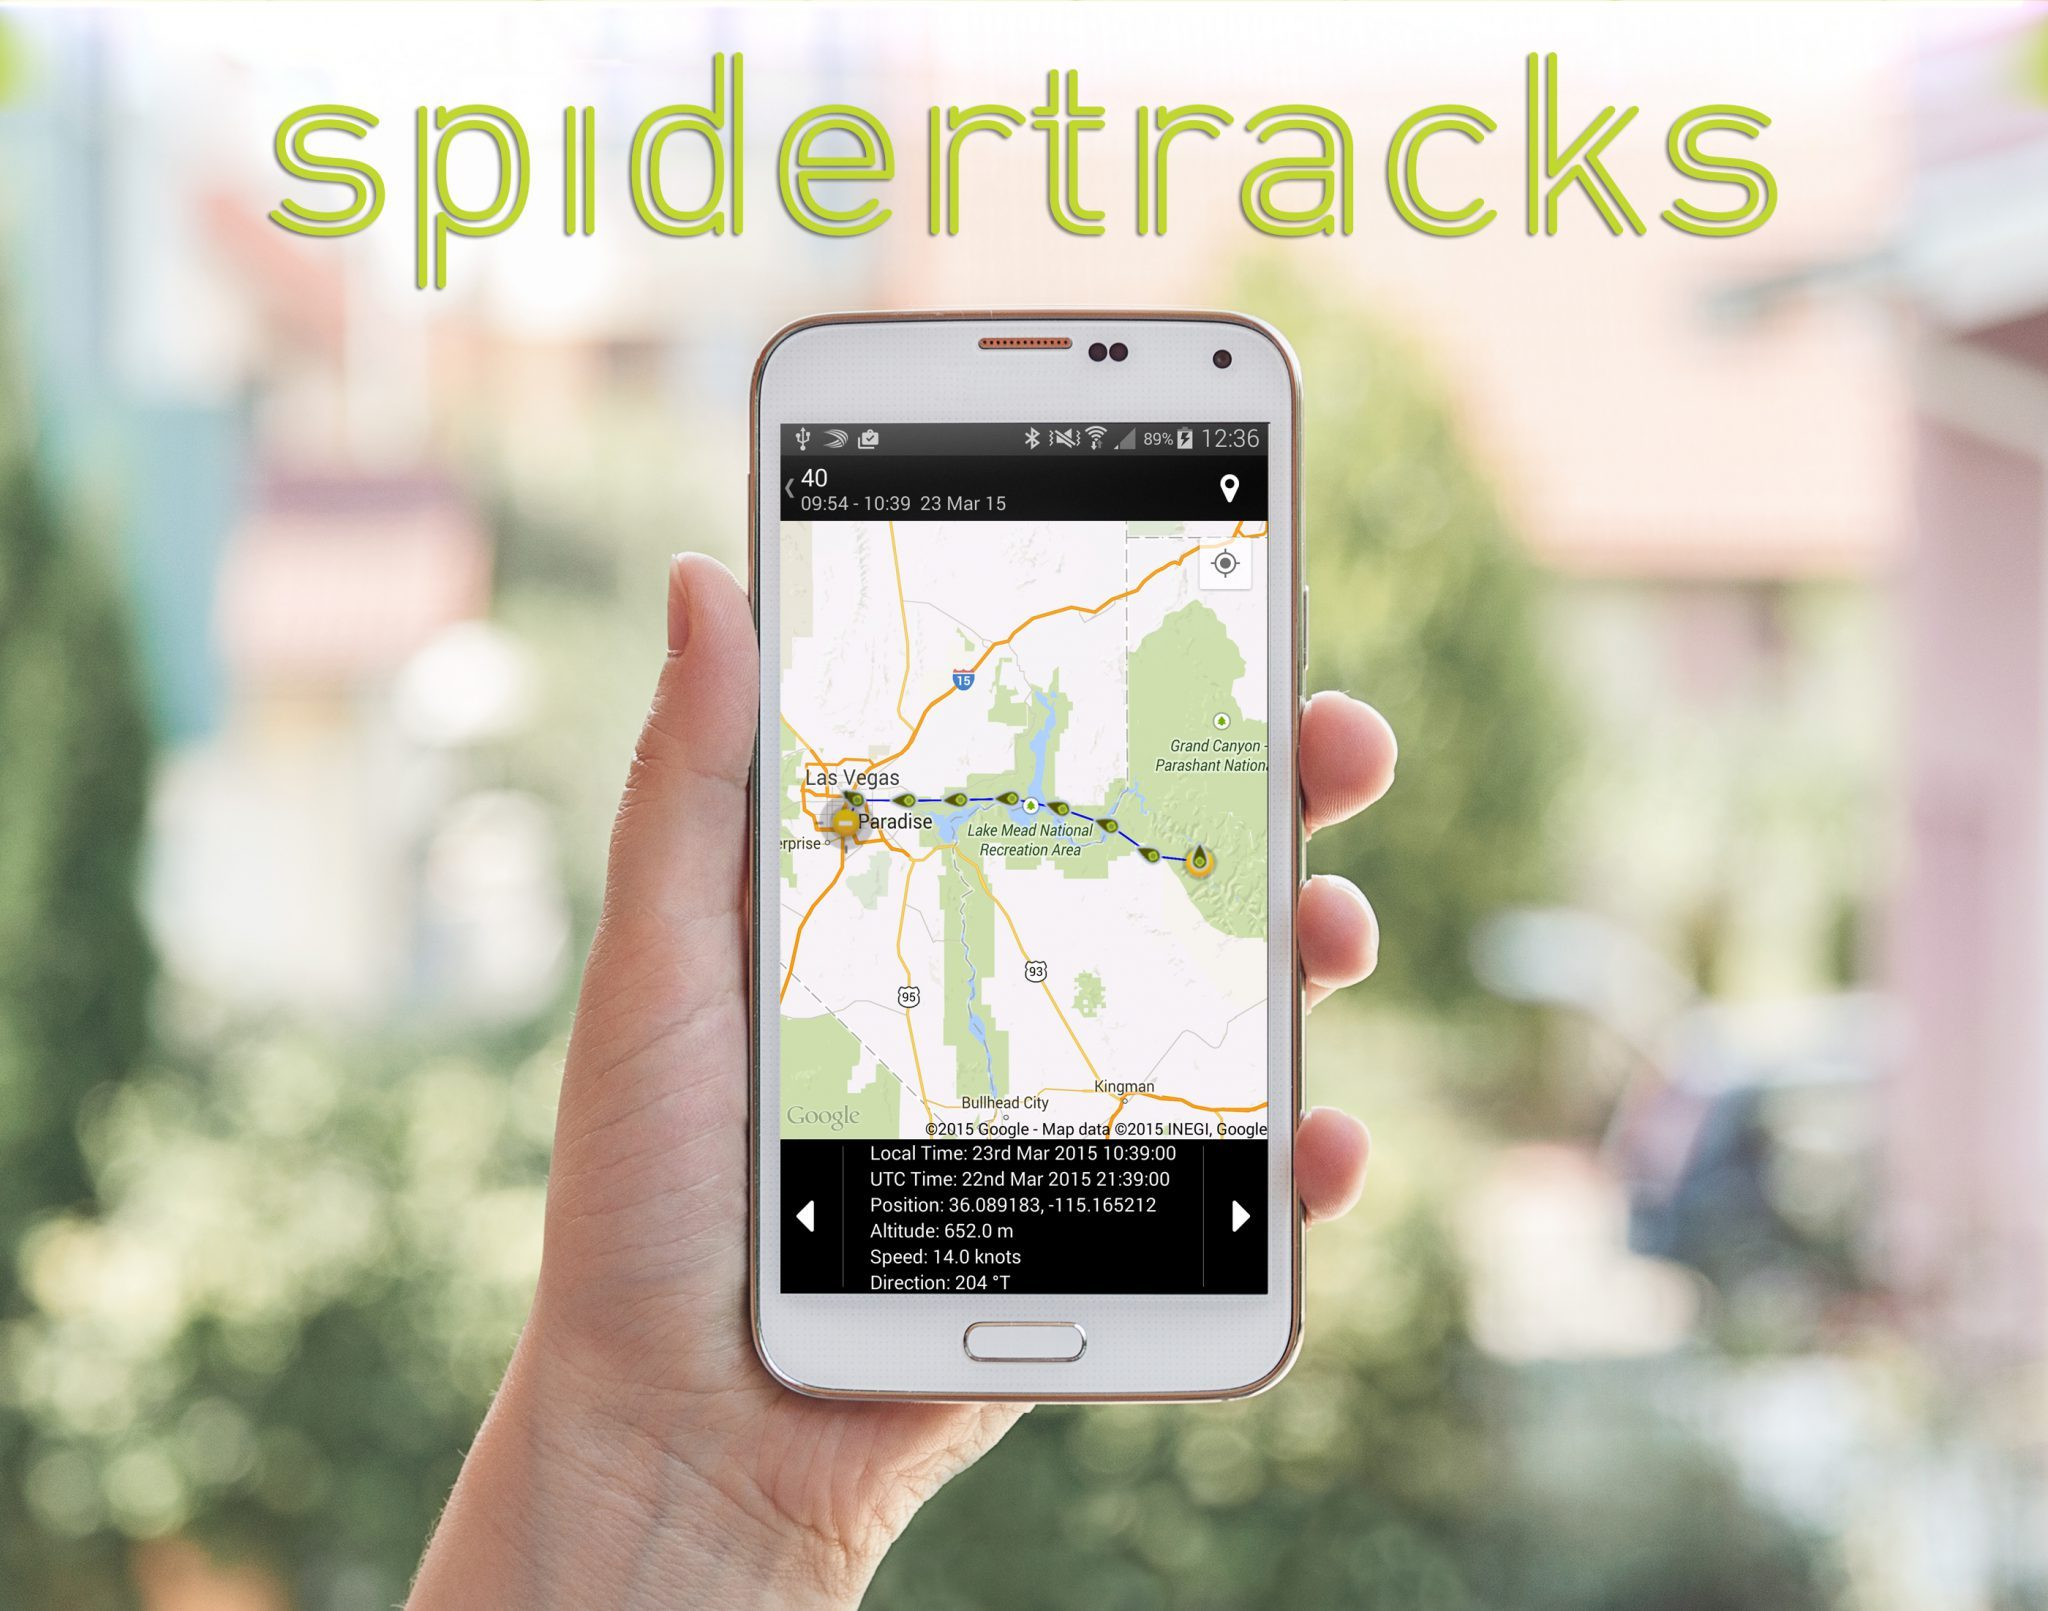 Spidertracks Releases App for Android Devices